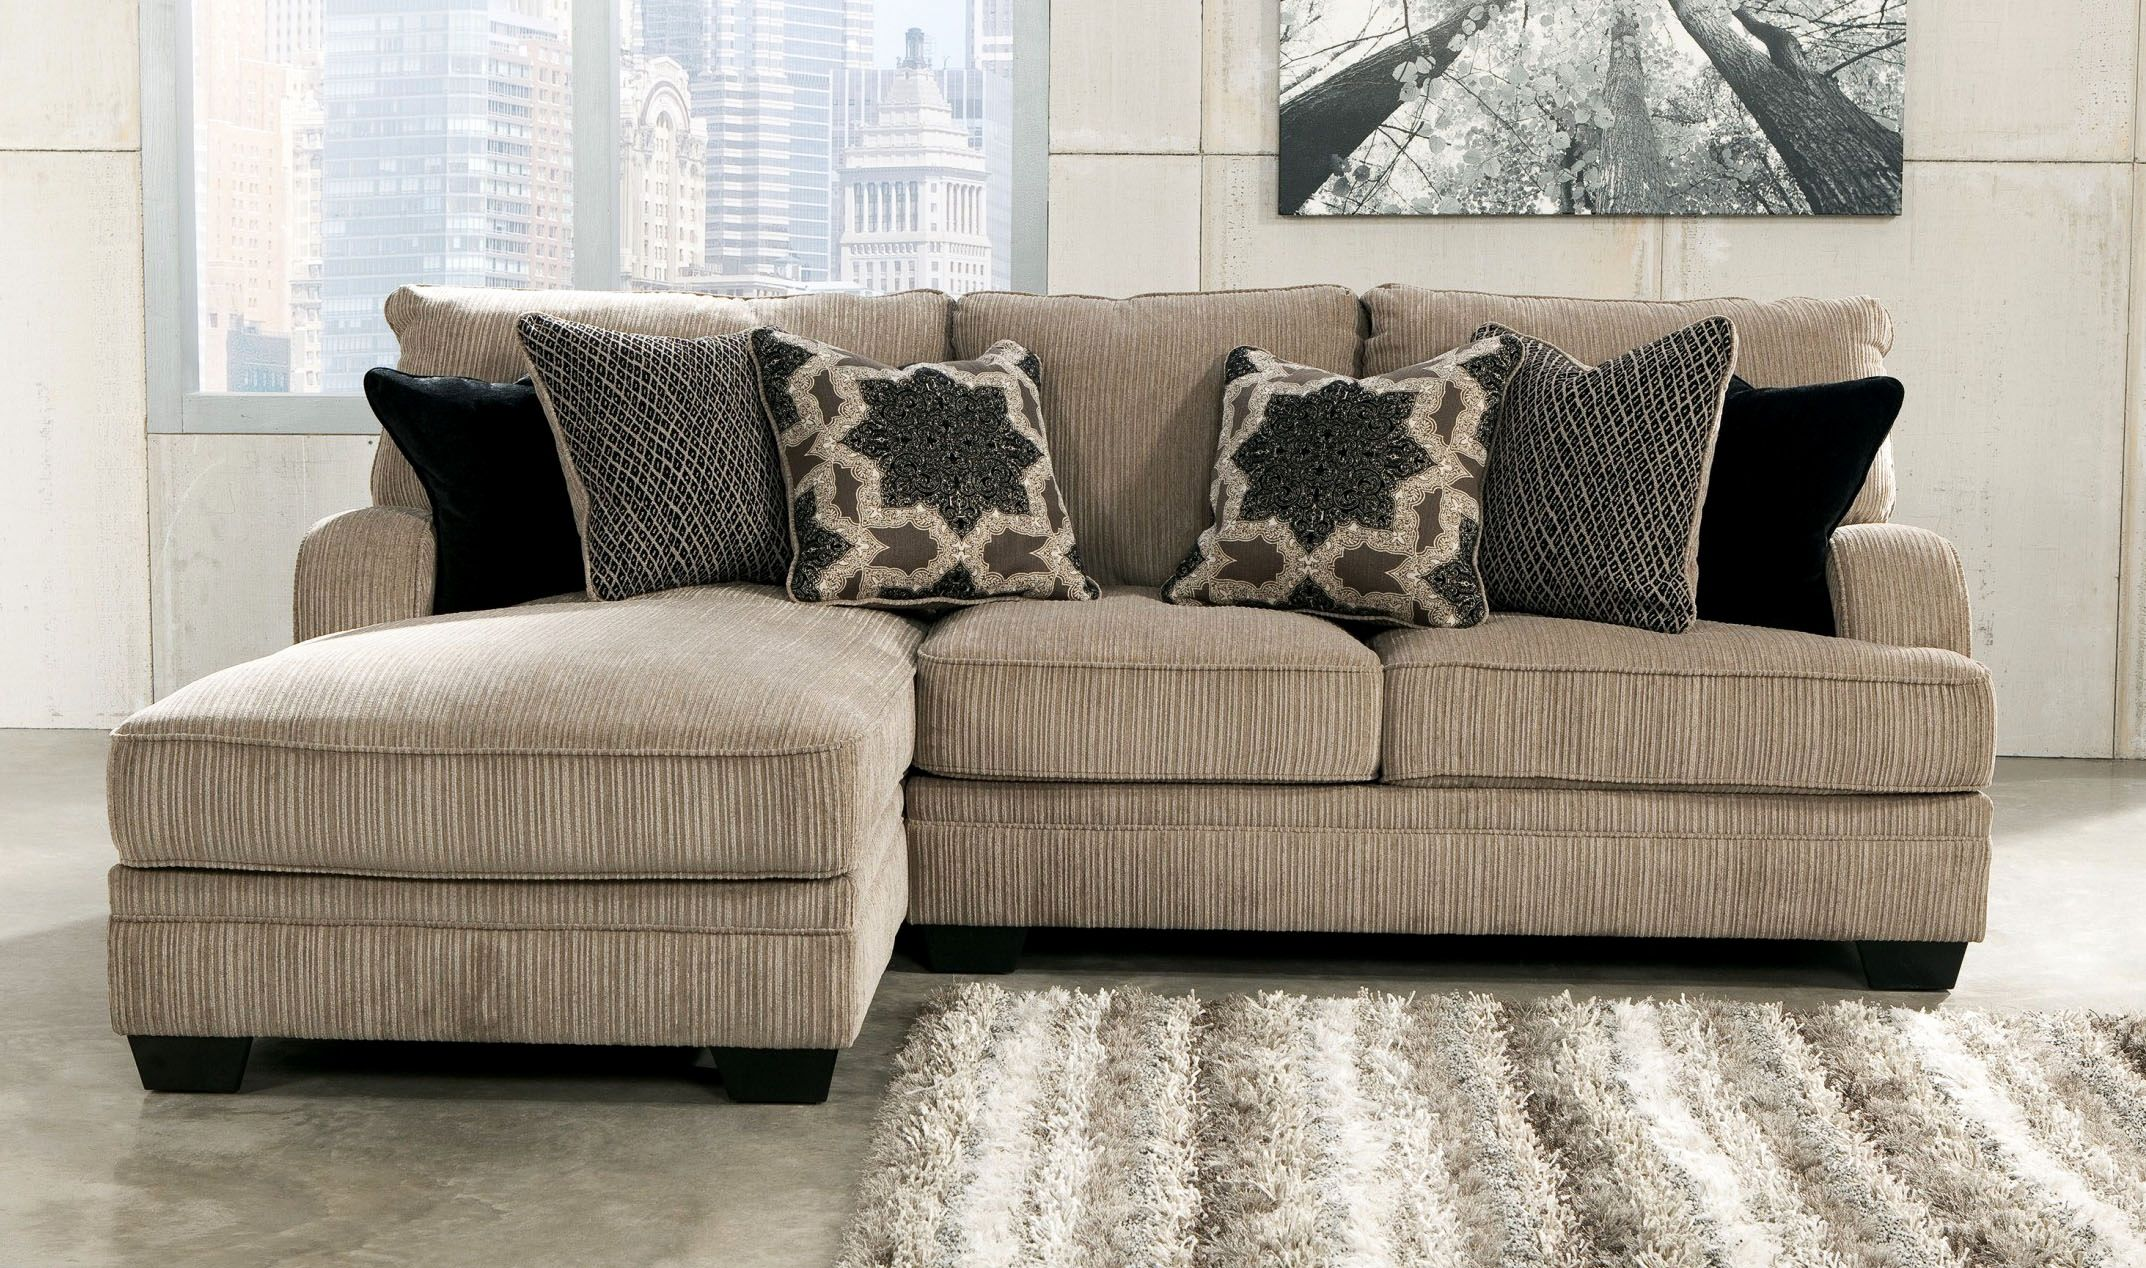 Best Of Sleeper Sofas For Small Spaces Art Luxury Small 400 x 300